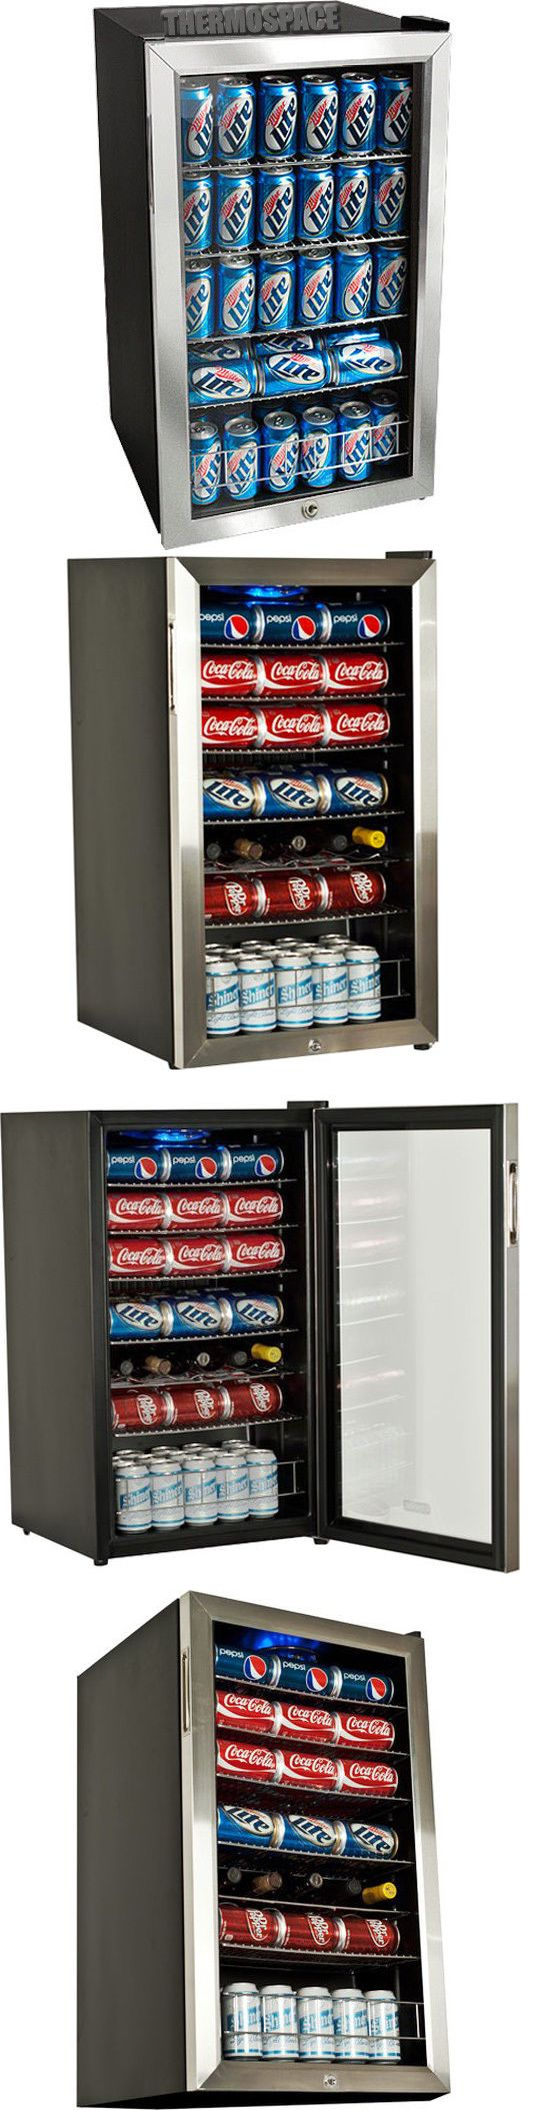 wine fridges and cellars countertop locking glass door beverage display cooler mini